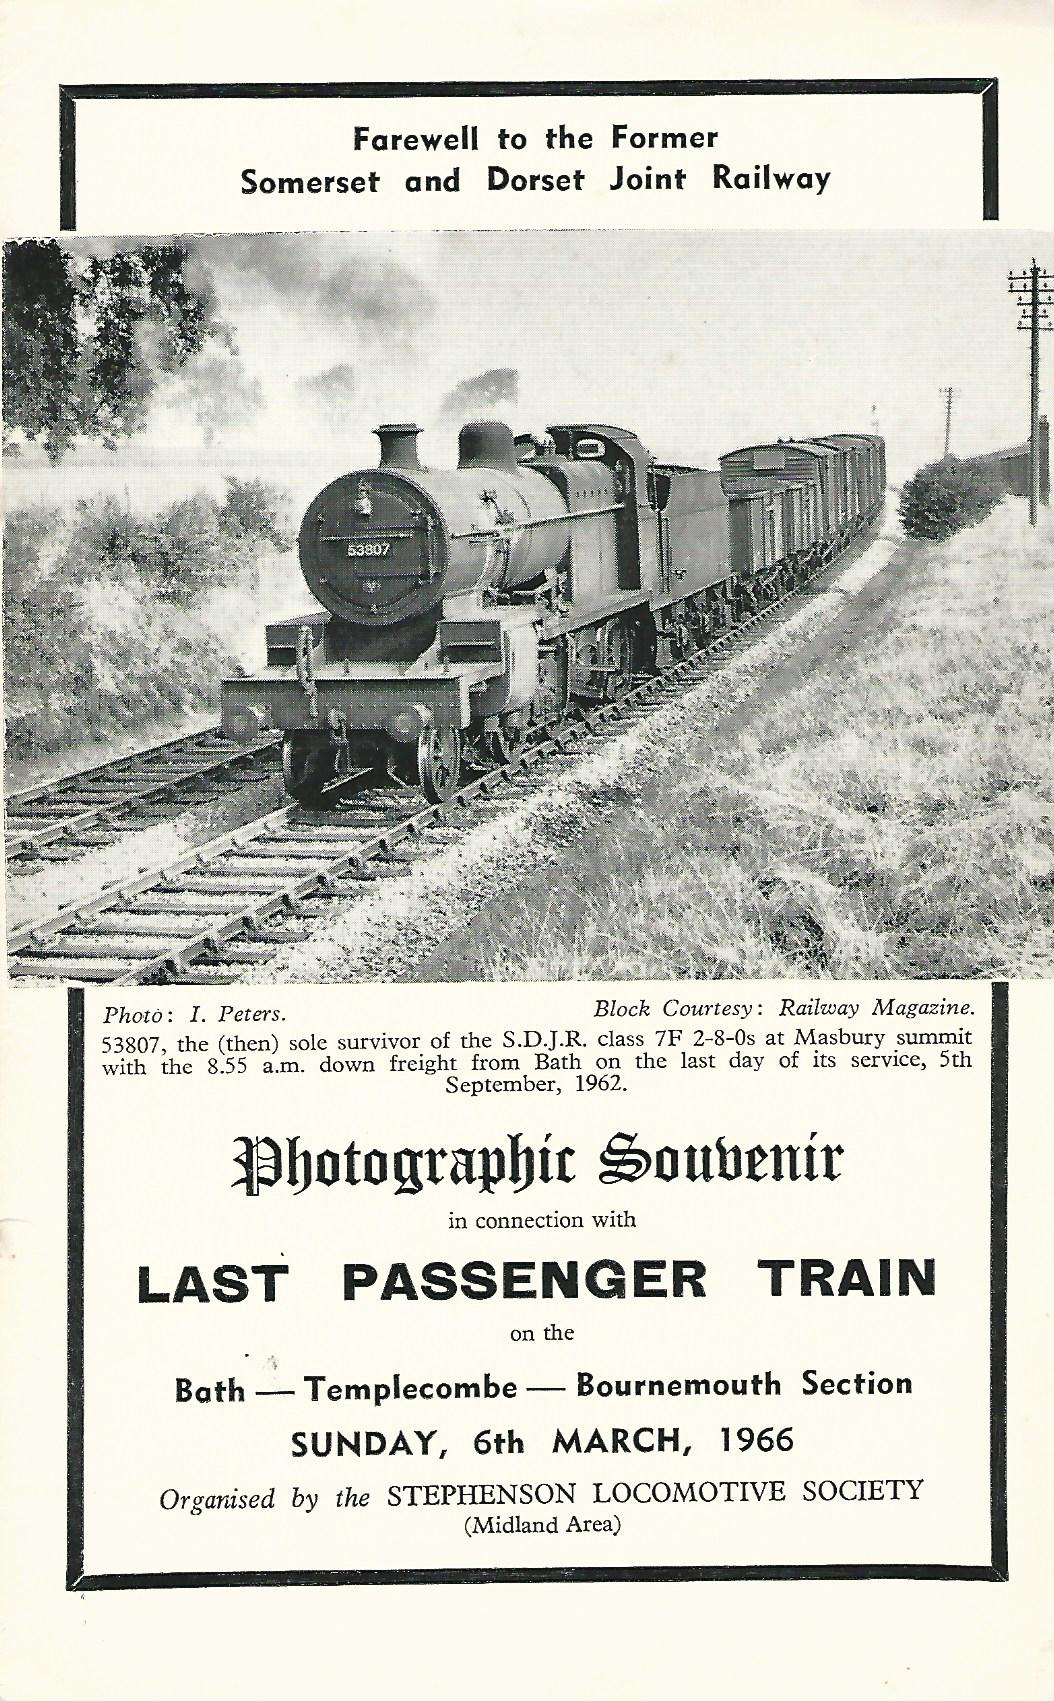 Image for Photographic Souvenir in connection with Last Passenger Train on the Bath - Templecombe - Bournemouth Section.